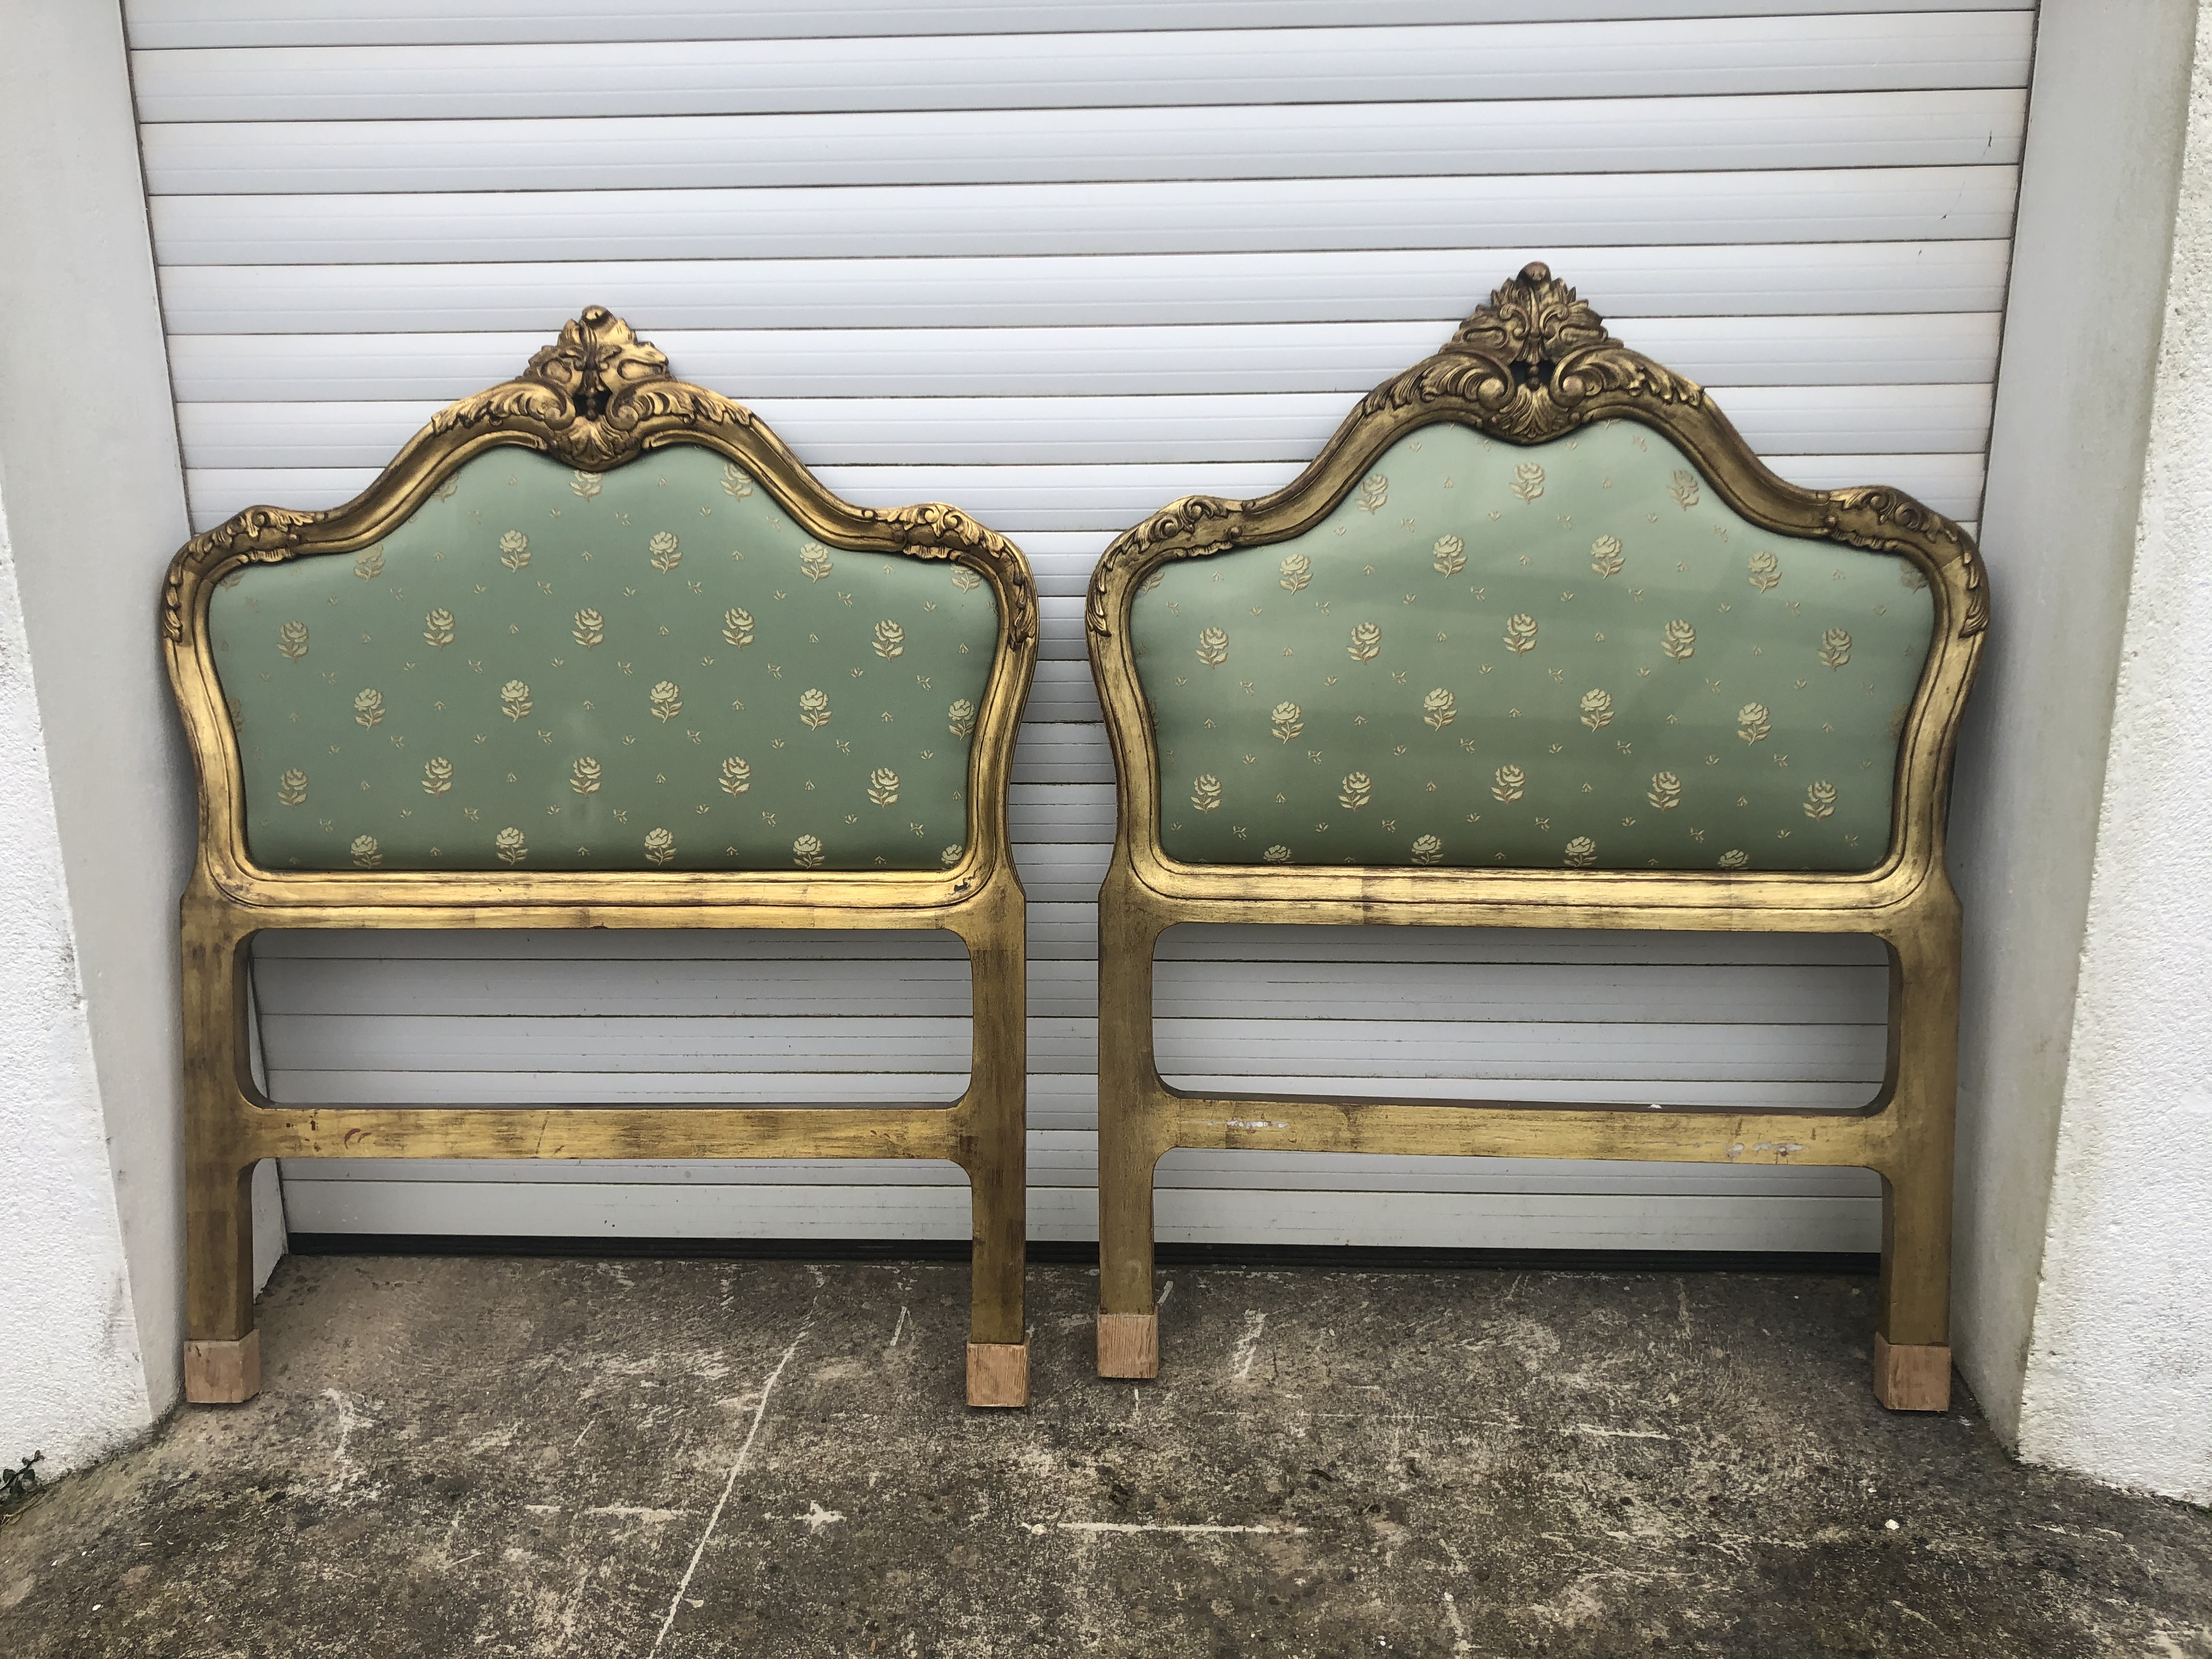 Lovely Pair Repro French Gilt Single Beds